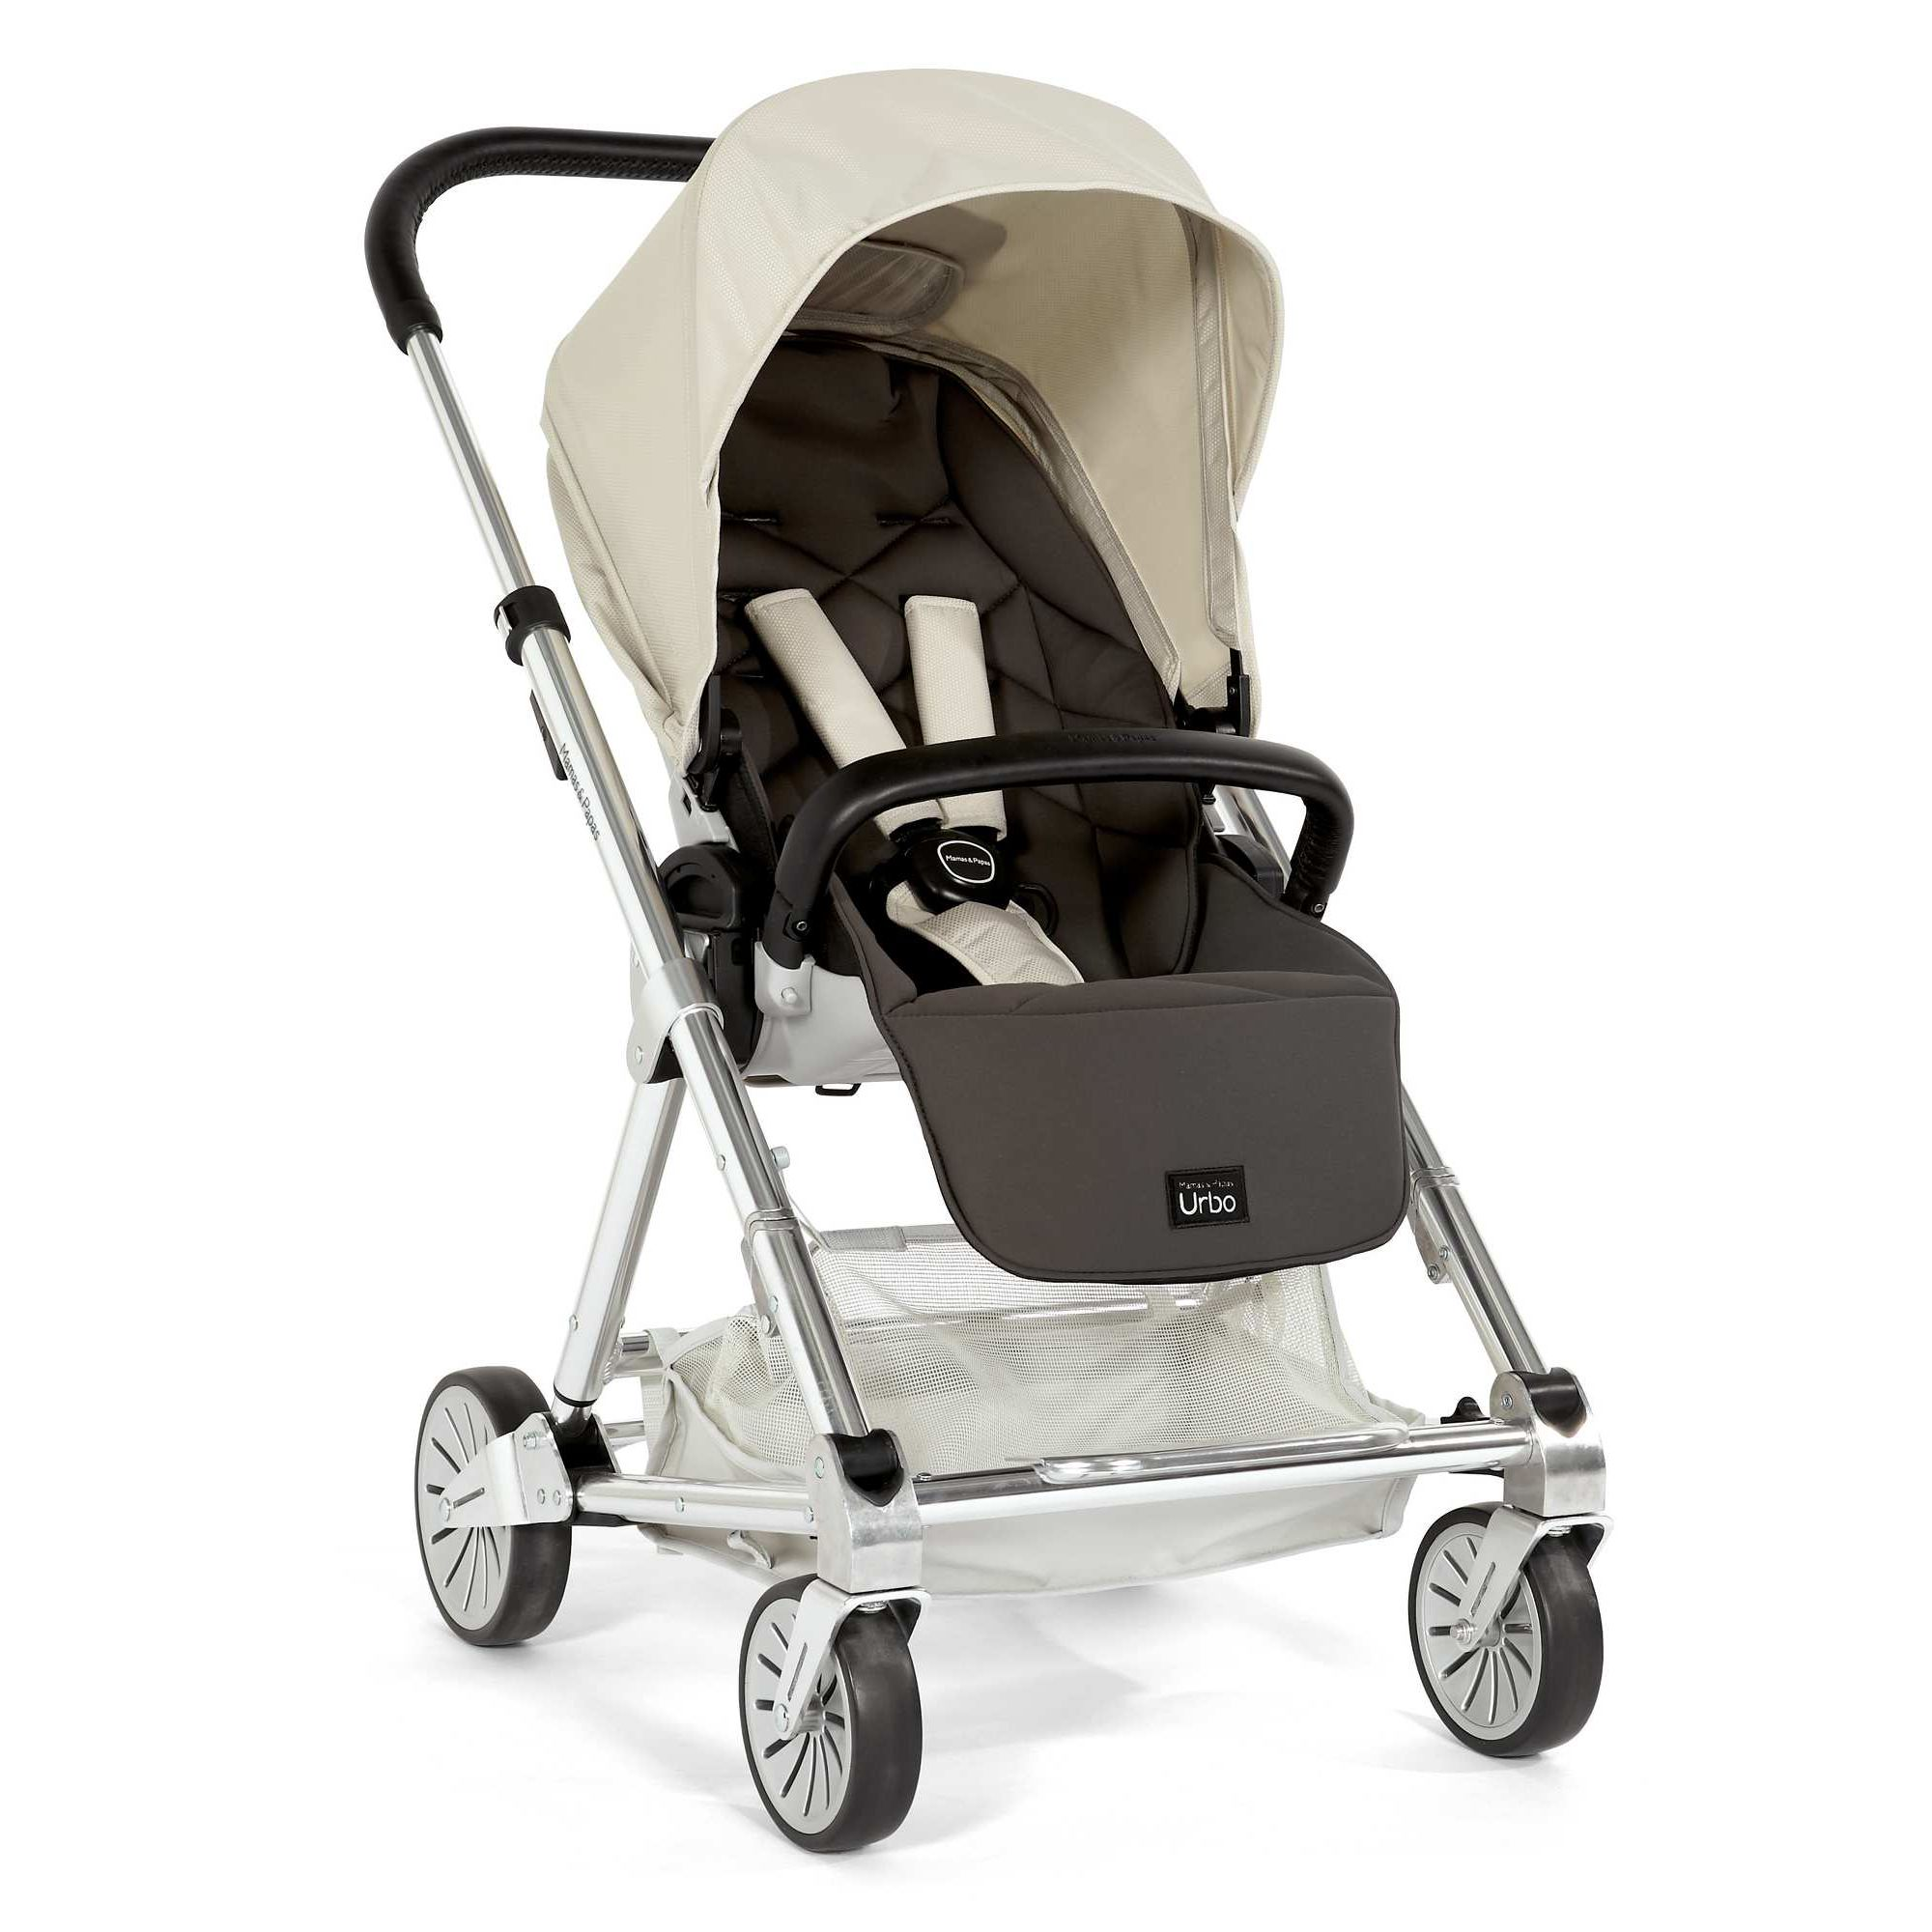 Mamas & Papas - Urbo Pushchair - Sandcastle at Tesco Direct